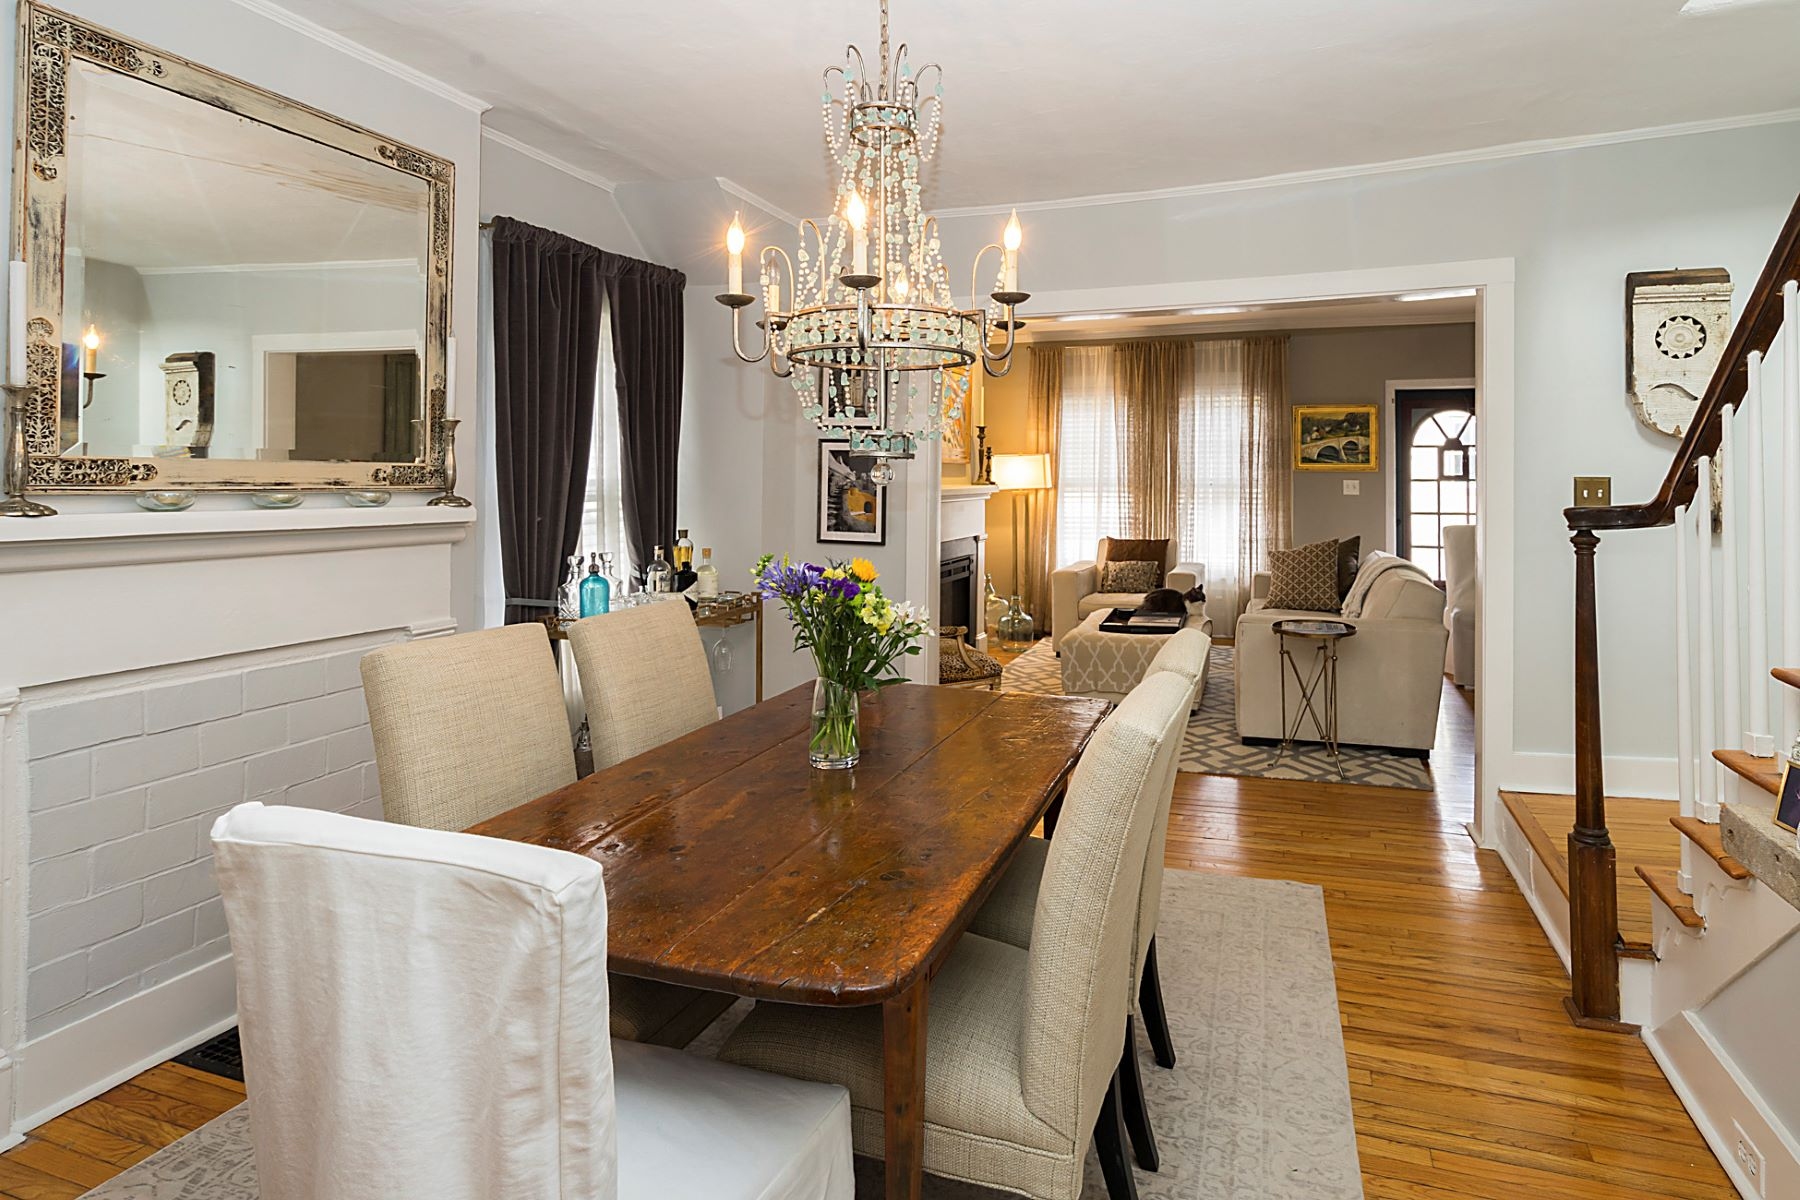 Additional photo for property listing at Luxury In The Heart Of It All 53 Ferry Street, Lambertville, New Jersey 08530 United States